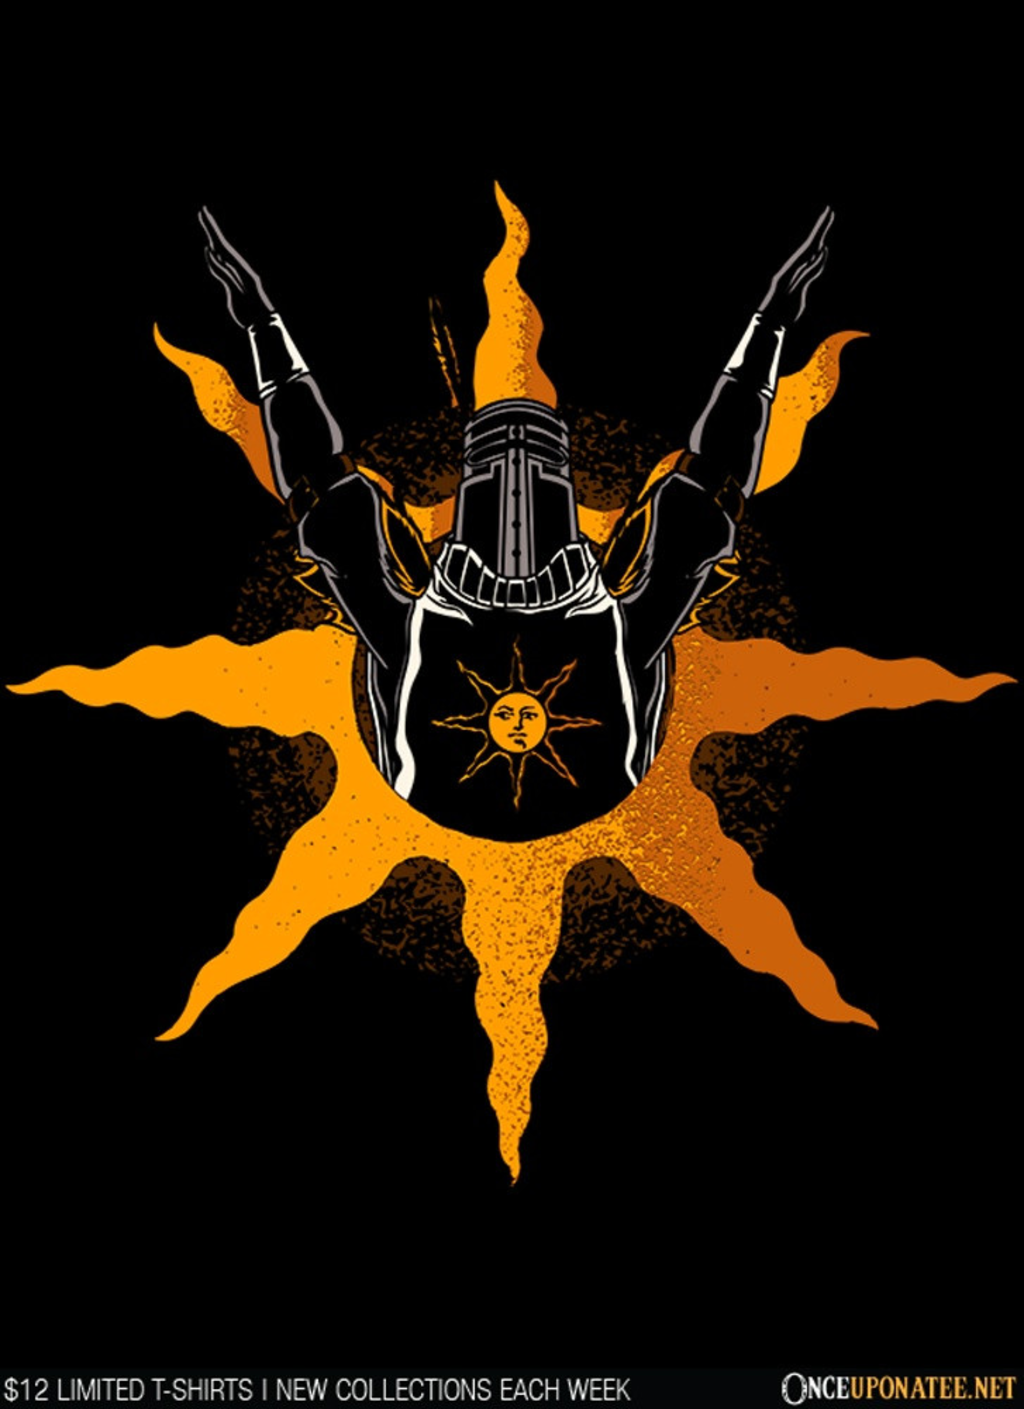 Once Upon a Tee: Symbol of the Sun